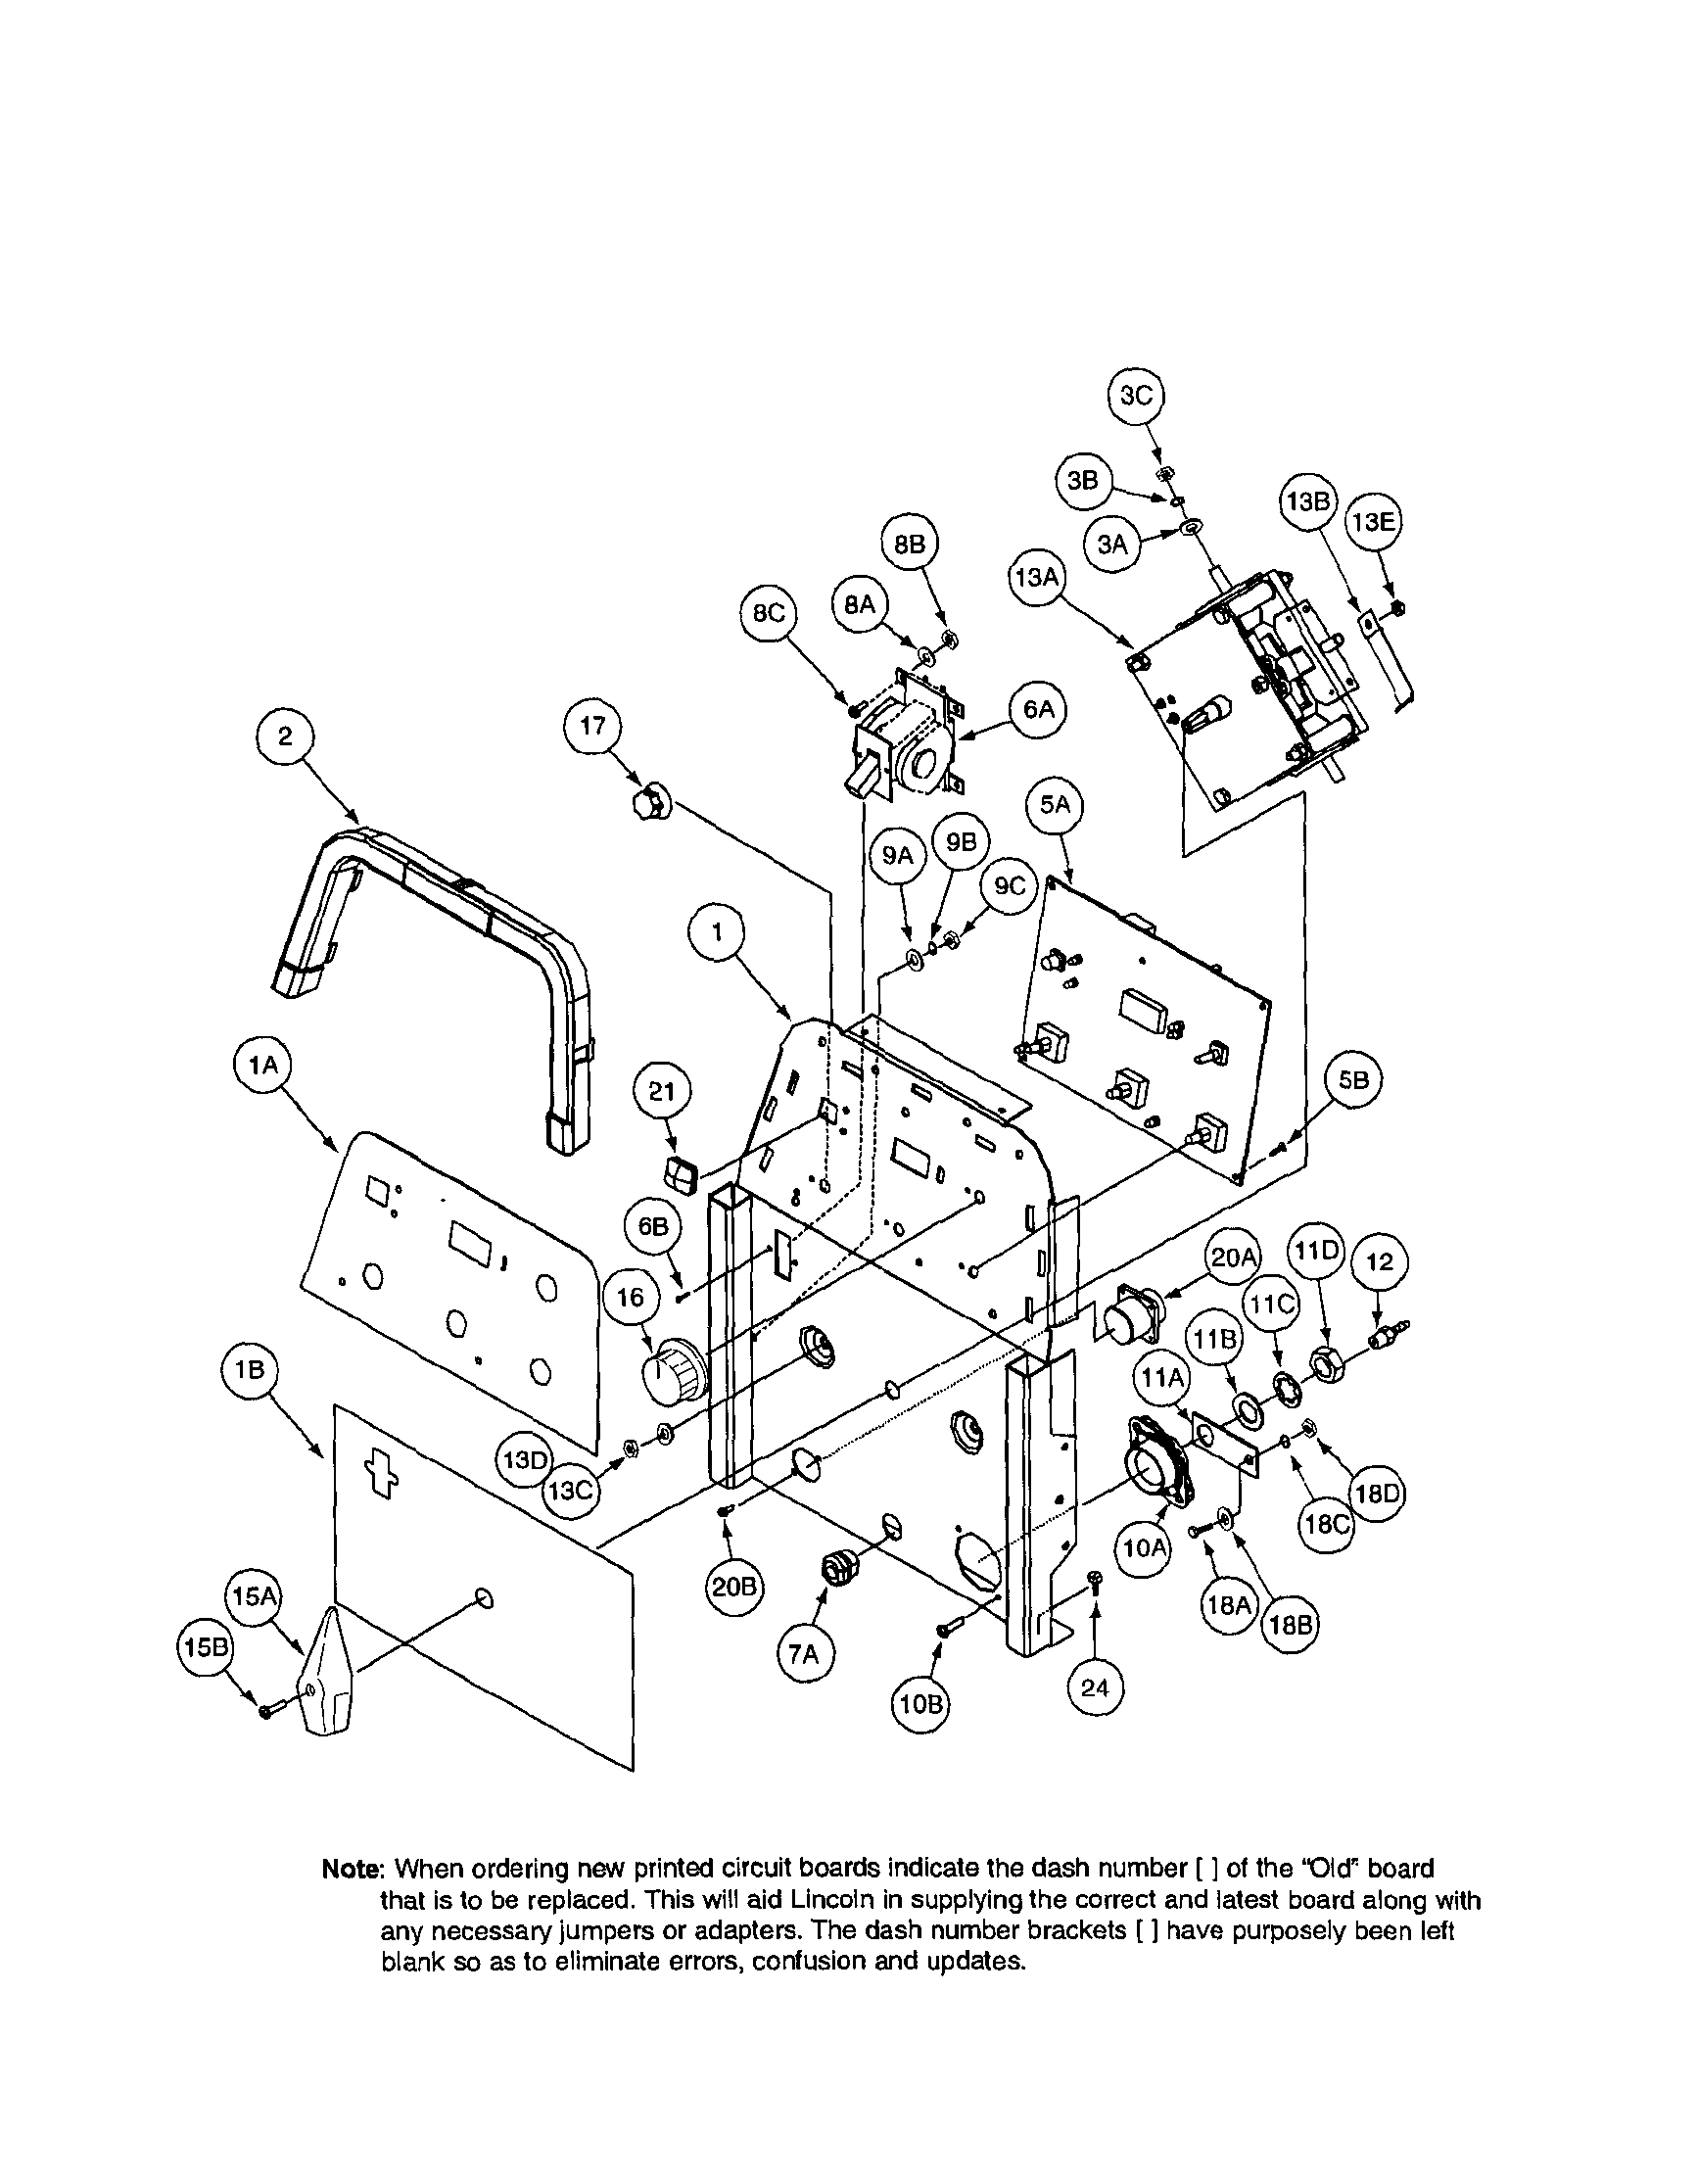 tig welding parts diagram wiring diagrams konsult lincoln 140 mig welder parts diagram mig welder parts diagram [ 1733 x 2230 Pixel ]